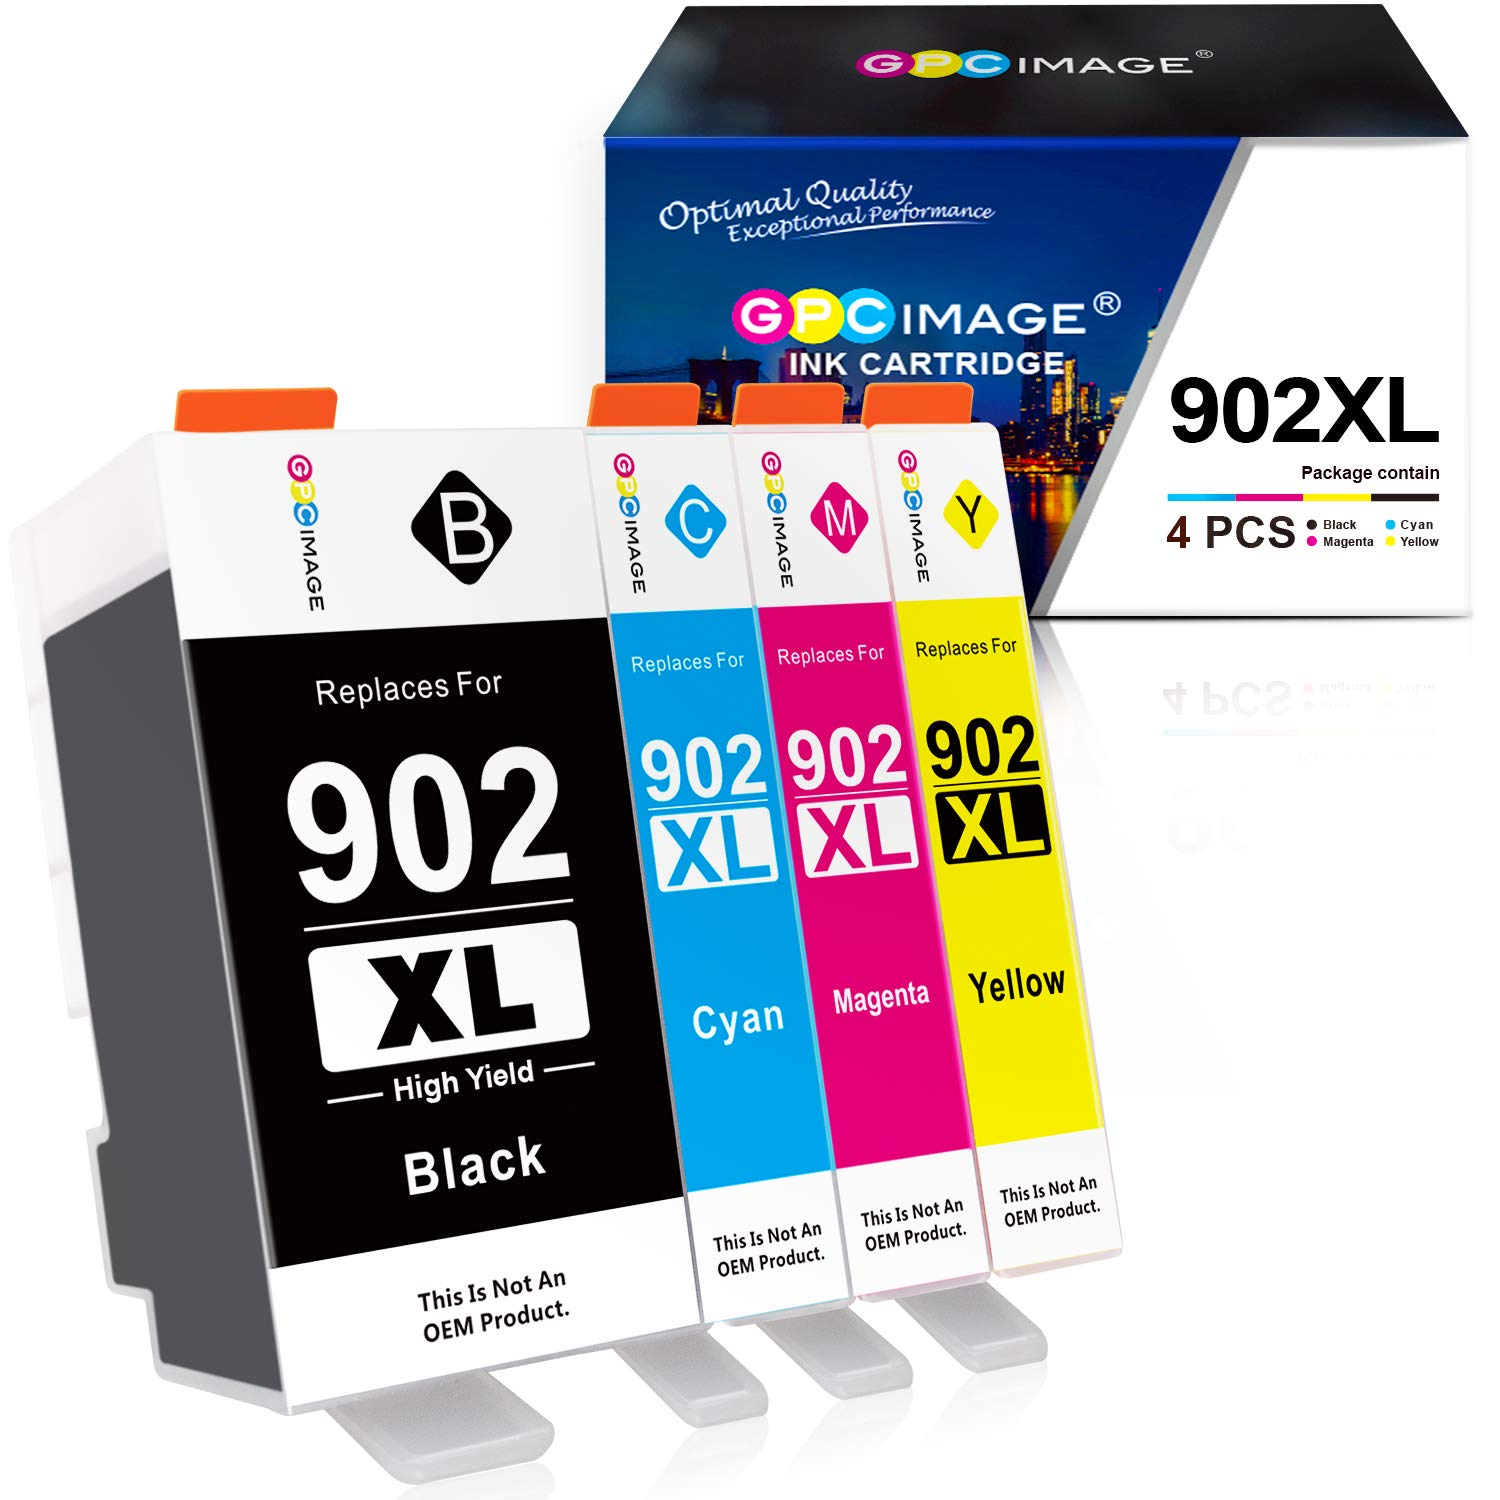 GPC Image Compatible Ink Cartridge Replacement for HP 902 XL 902XL (Newest Chip) to use with OfficeJet Pro 6978 6968 6962 6958 6954 6960 Printers(1 Black, 1 Cyan, 1 Magenta, 1 Yellow, 4 Pack)